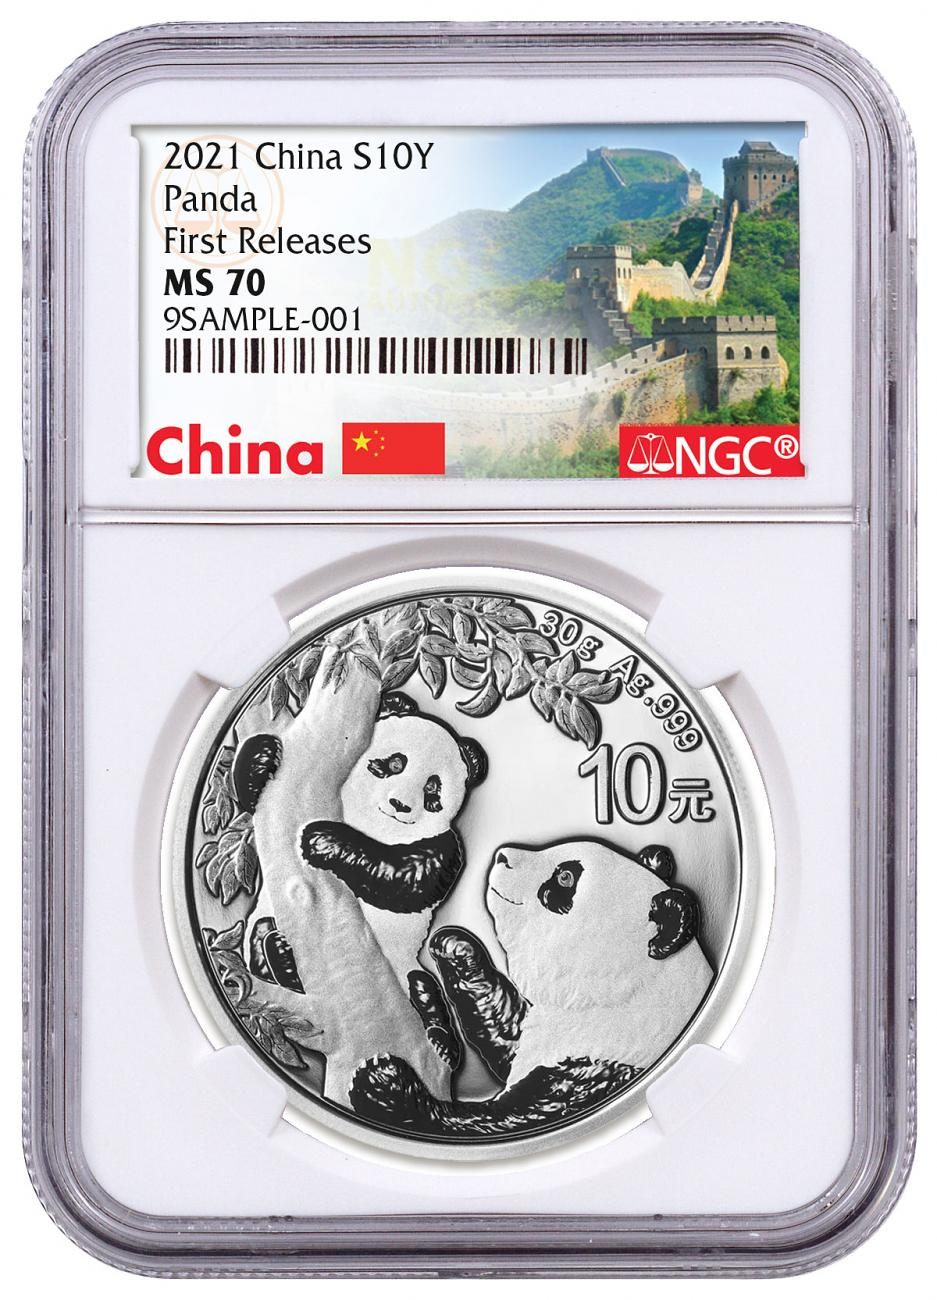 2021 China 30 g Silver Panda ¥10 Coin NGC MS70 FR White Core Holder Great Wall Label